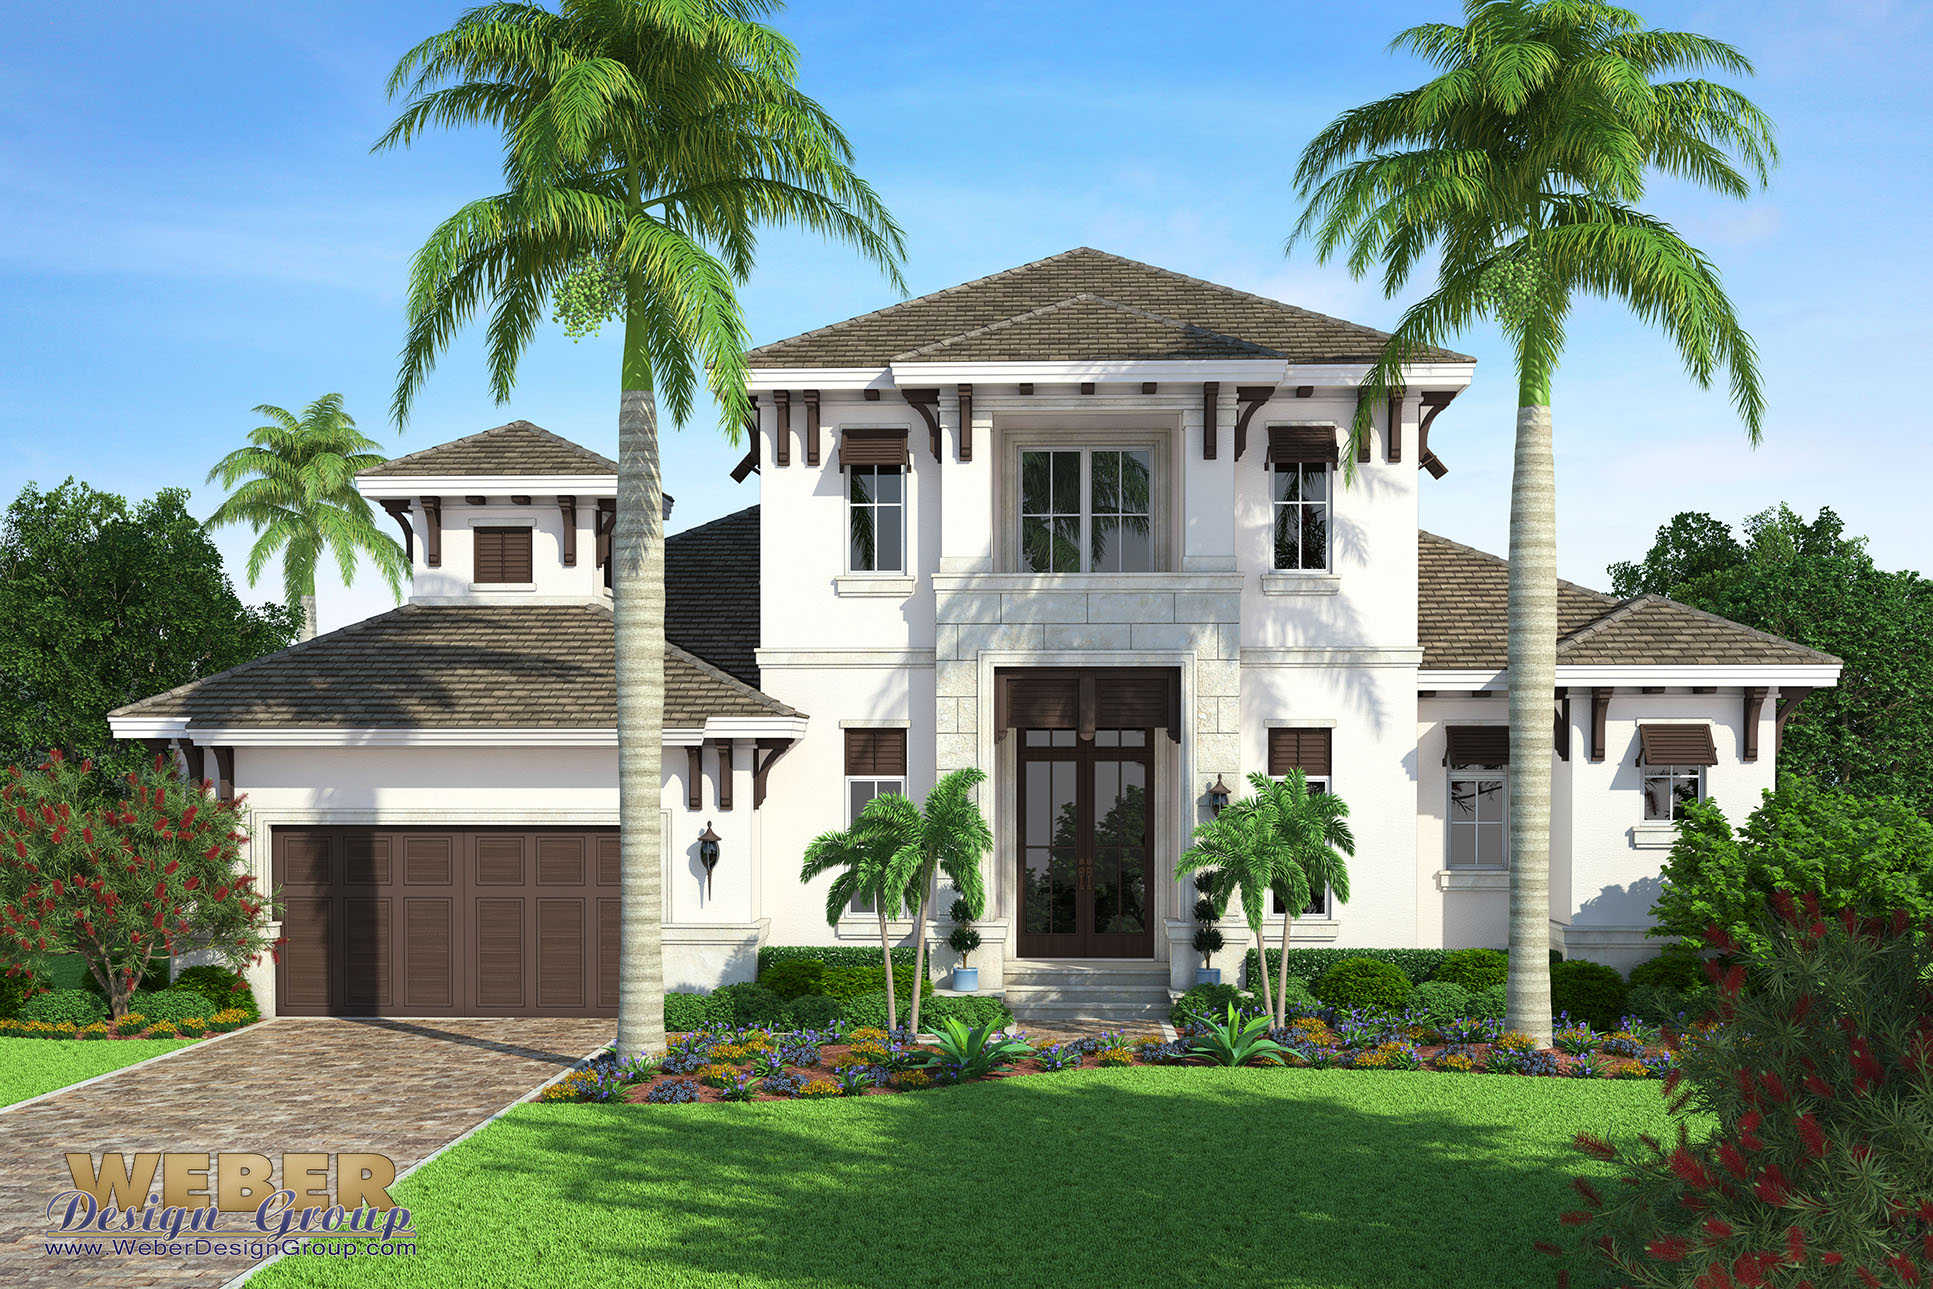 west indies home plan edgewater model weber design group